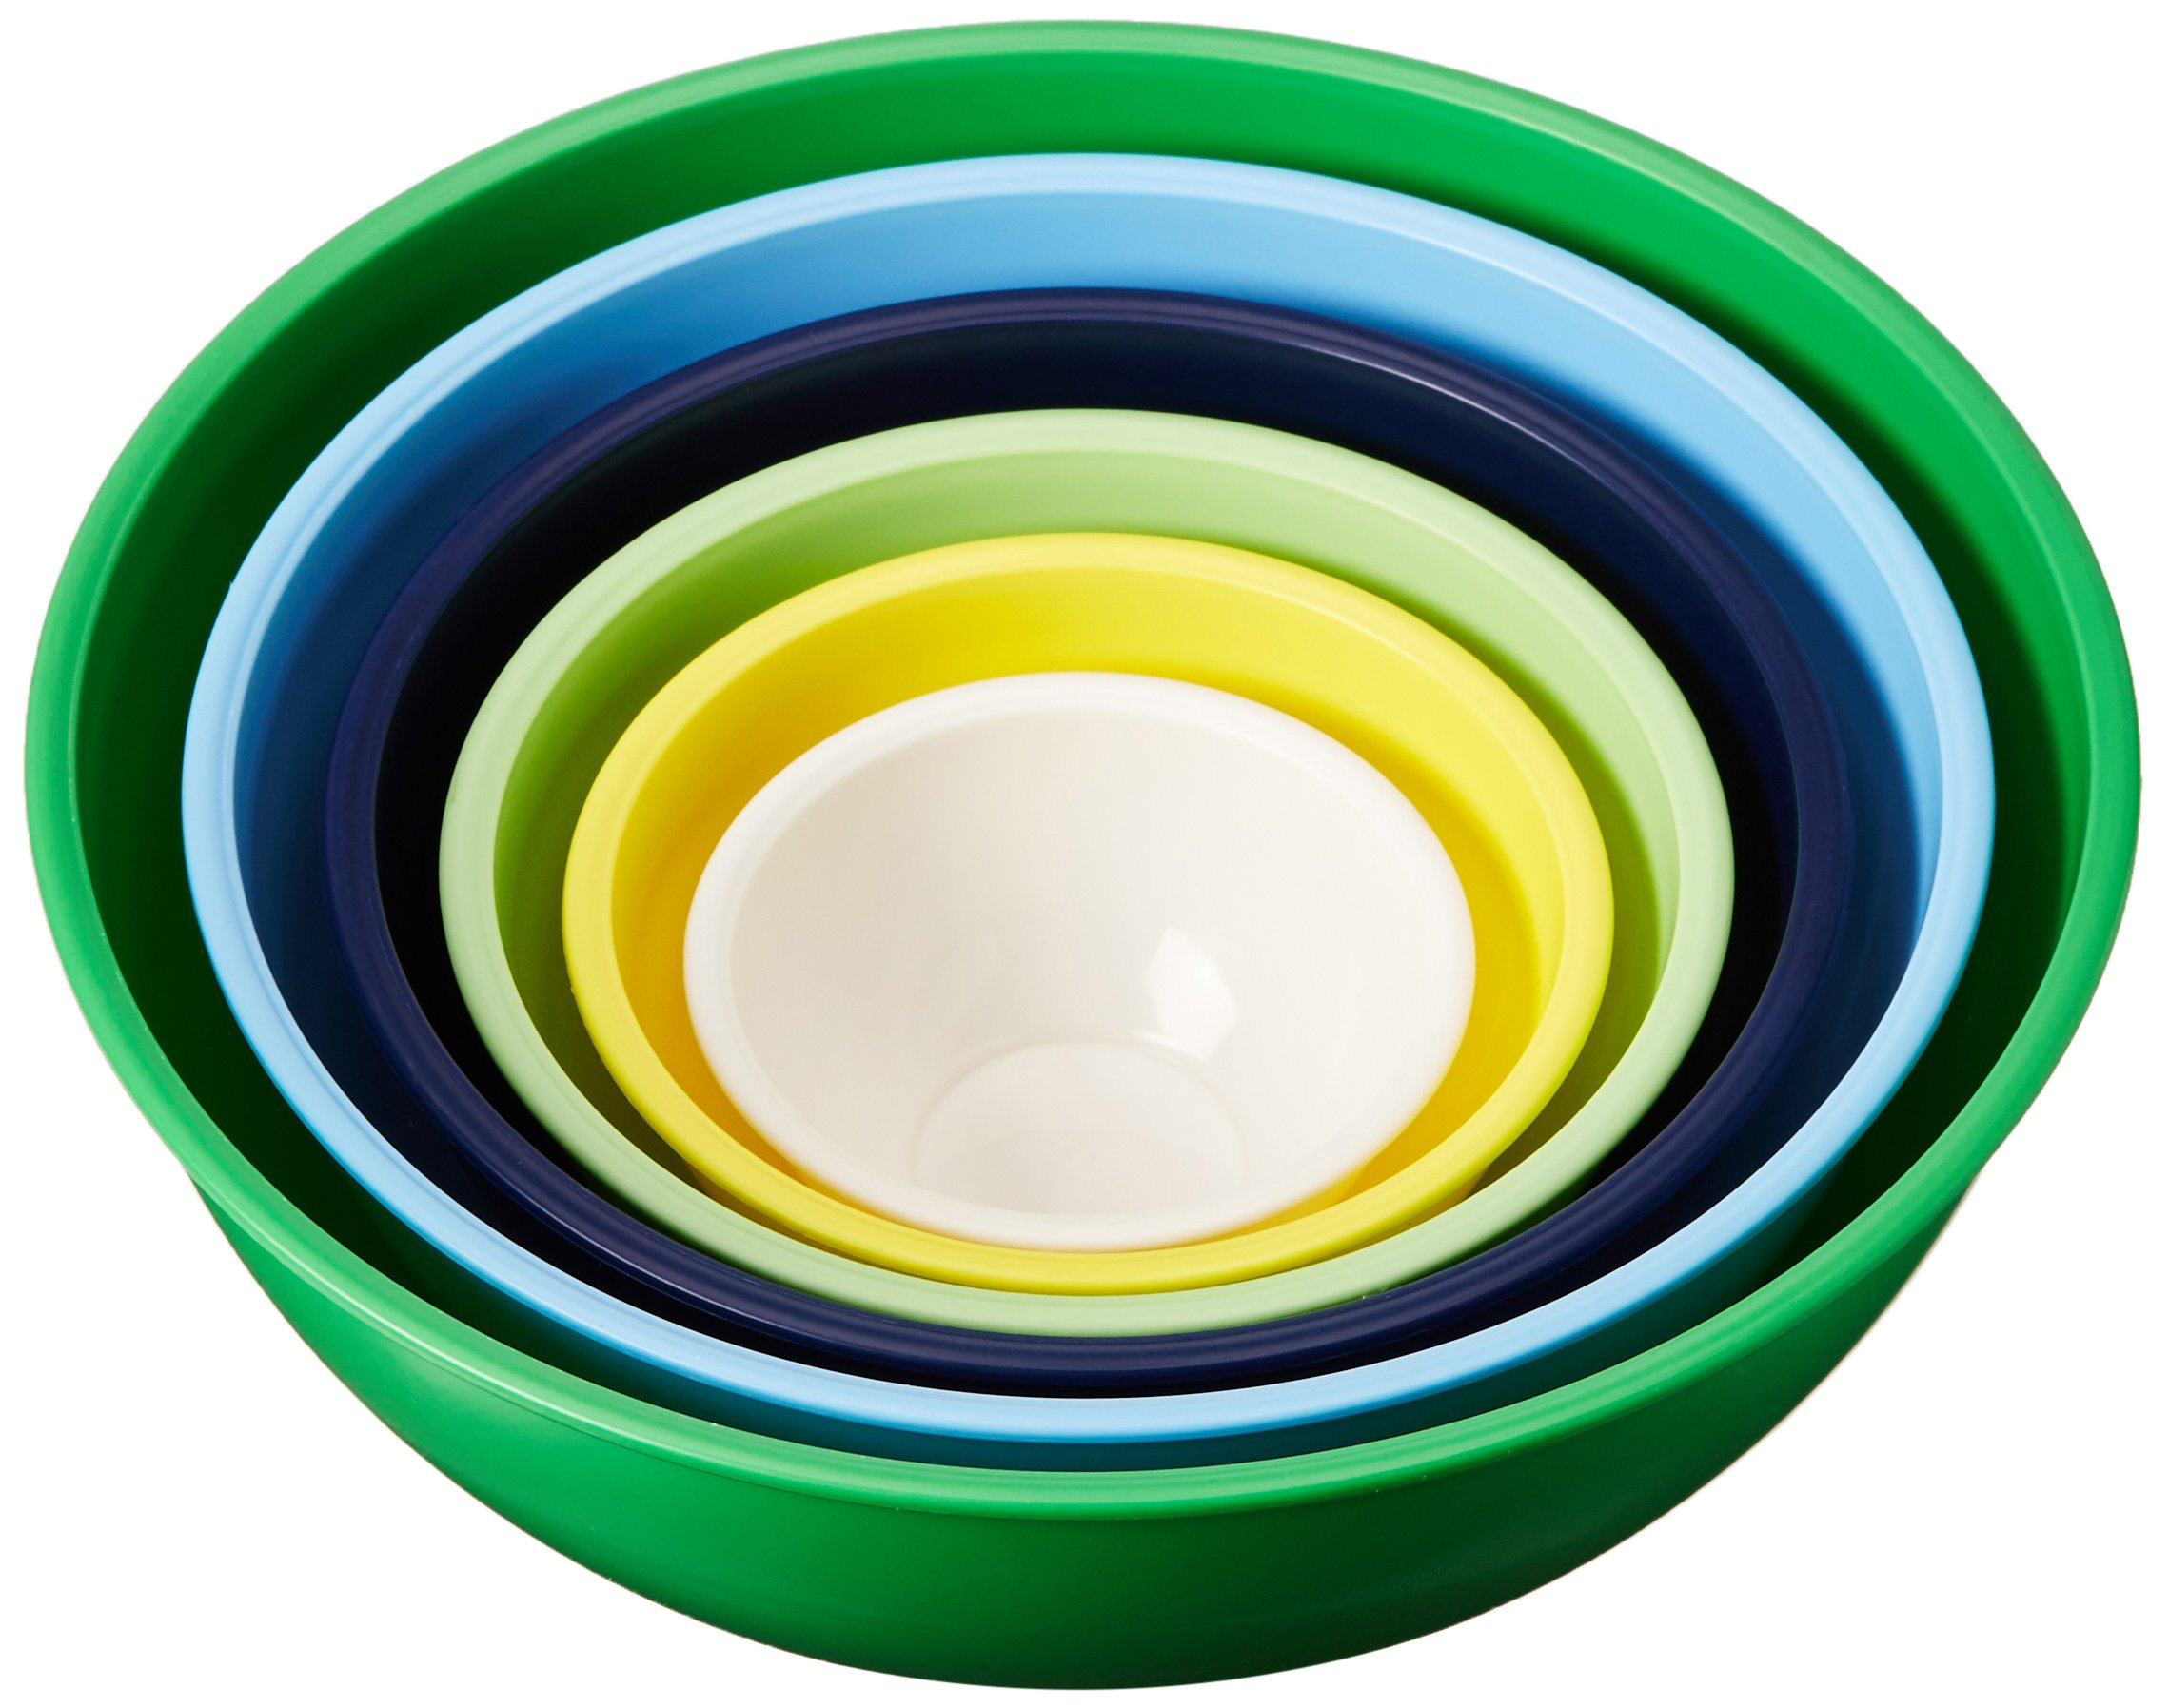 Gourmet Home Products 6 Piece Nested Polypropylene Mixing Bowl Set, Green by Home Gourmet